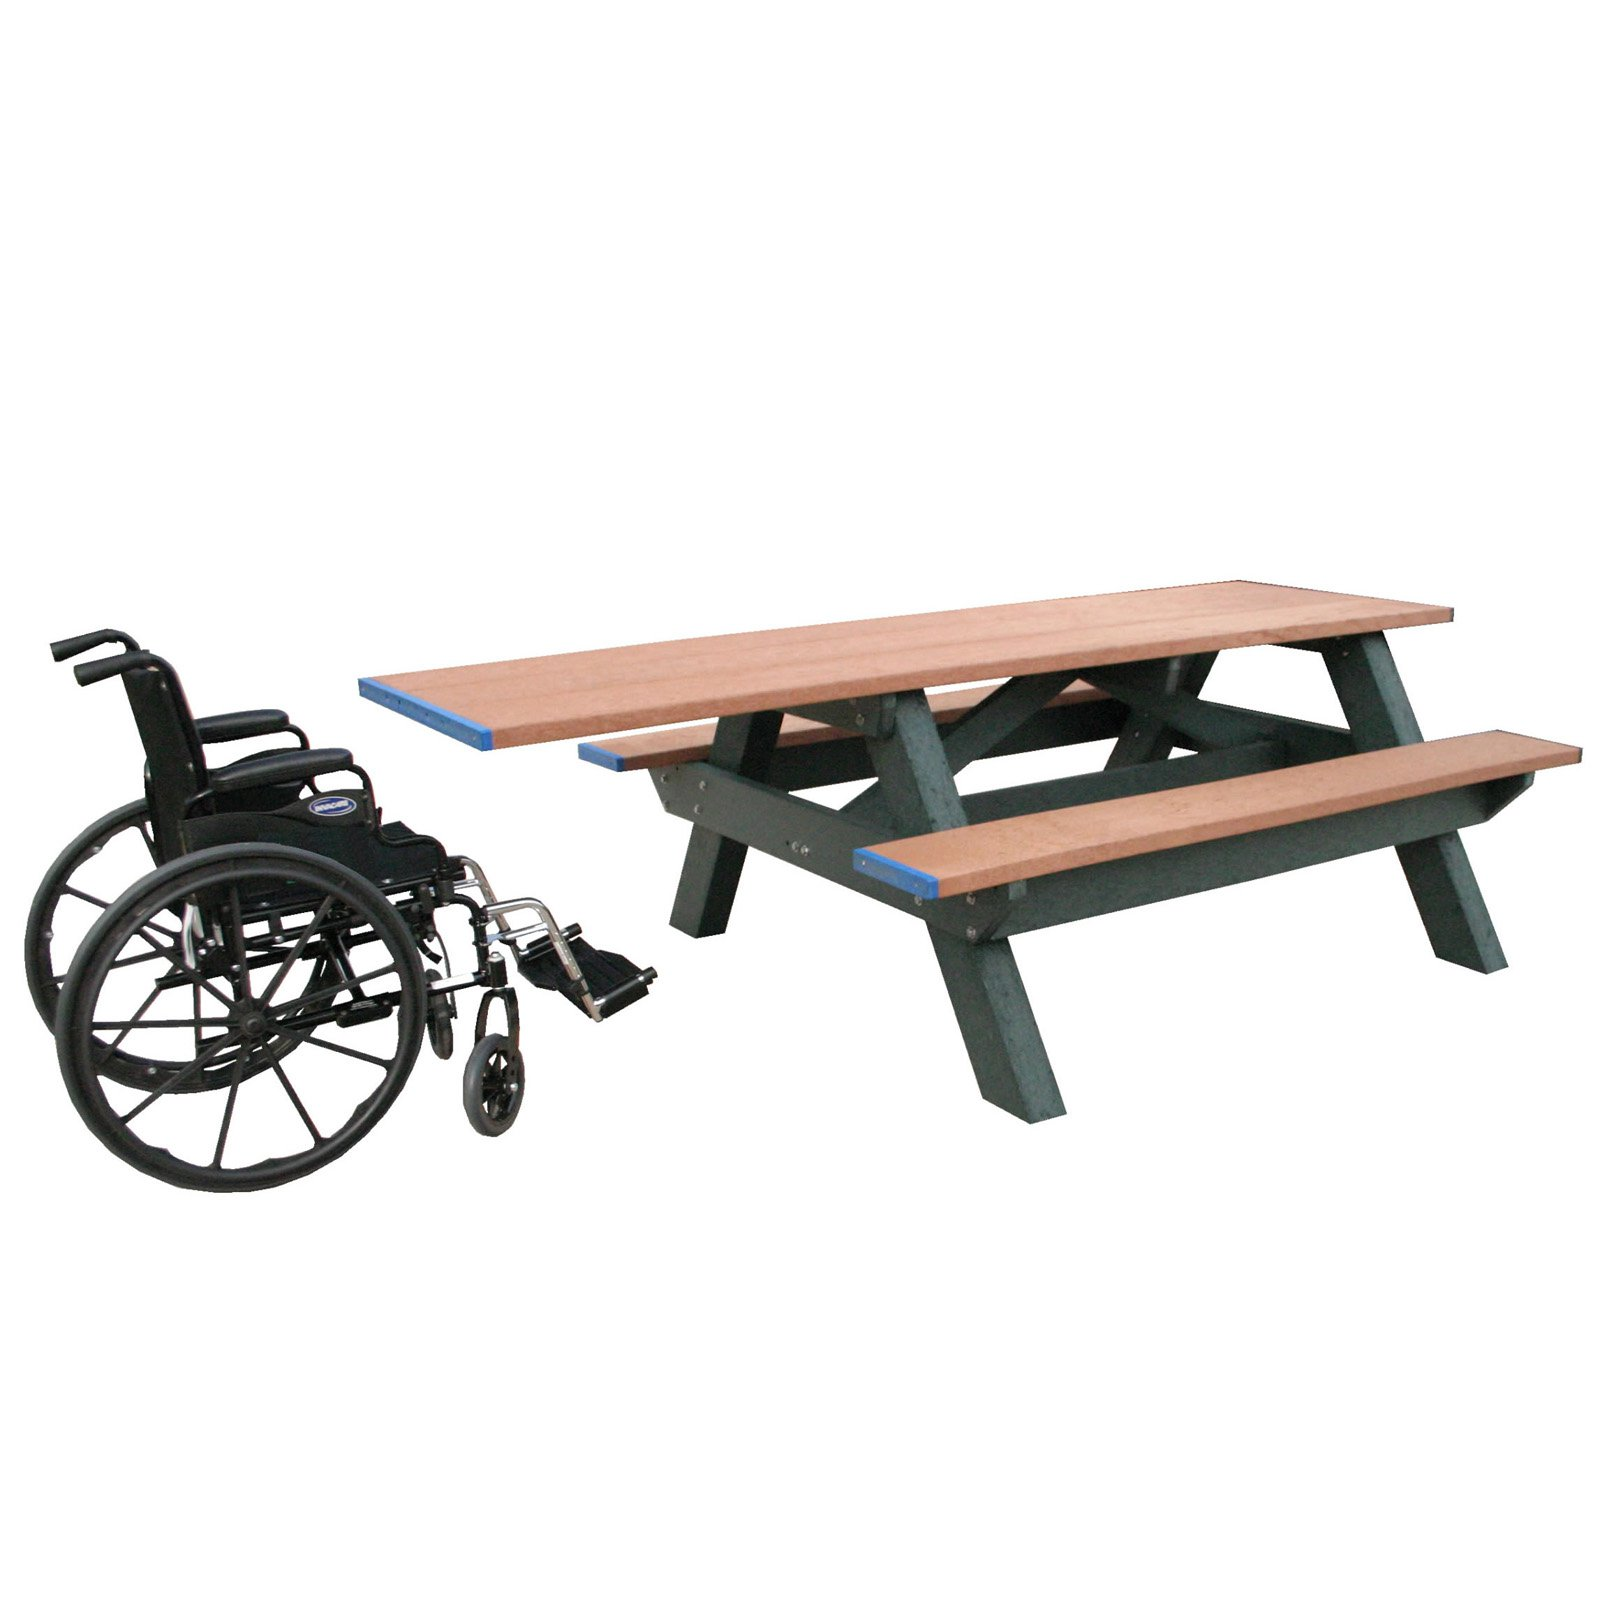 Polly Products Standard Recycled Plastic Picnic Table - Single ADA Entry